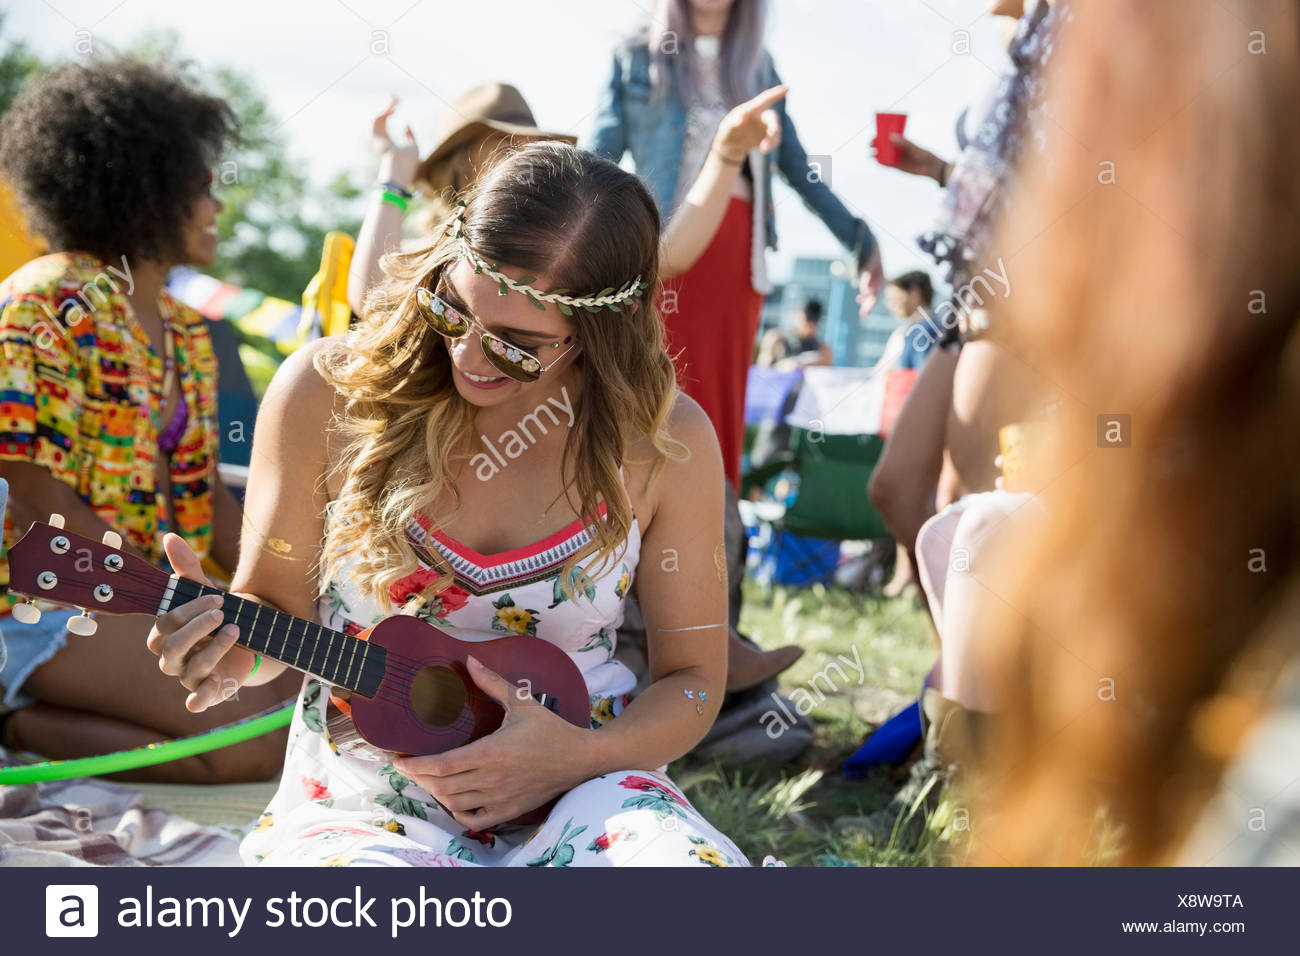 Young woman playing ukulele at summer music festival campsite - Stock Image